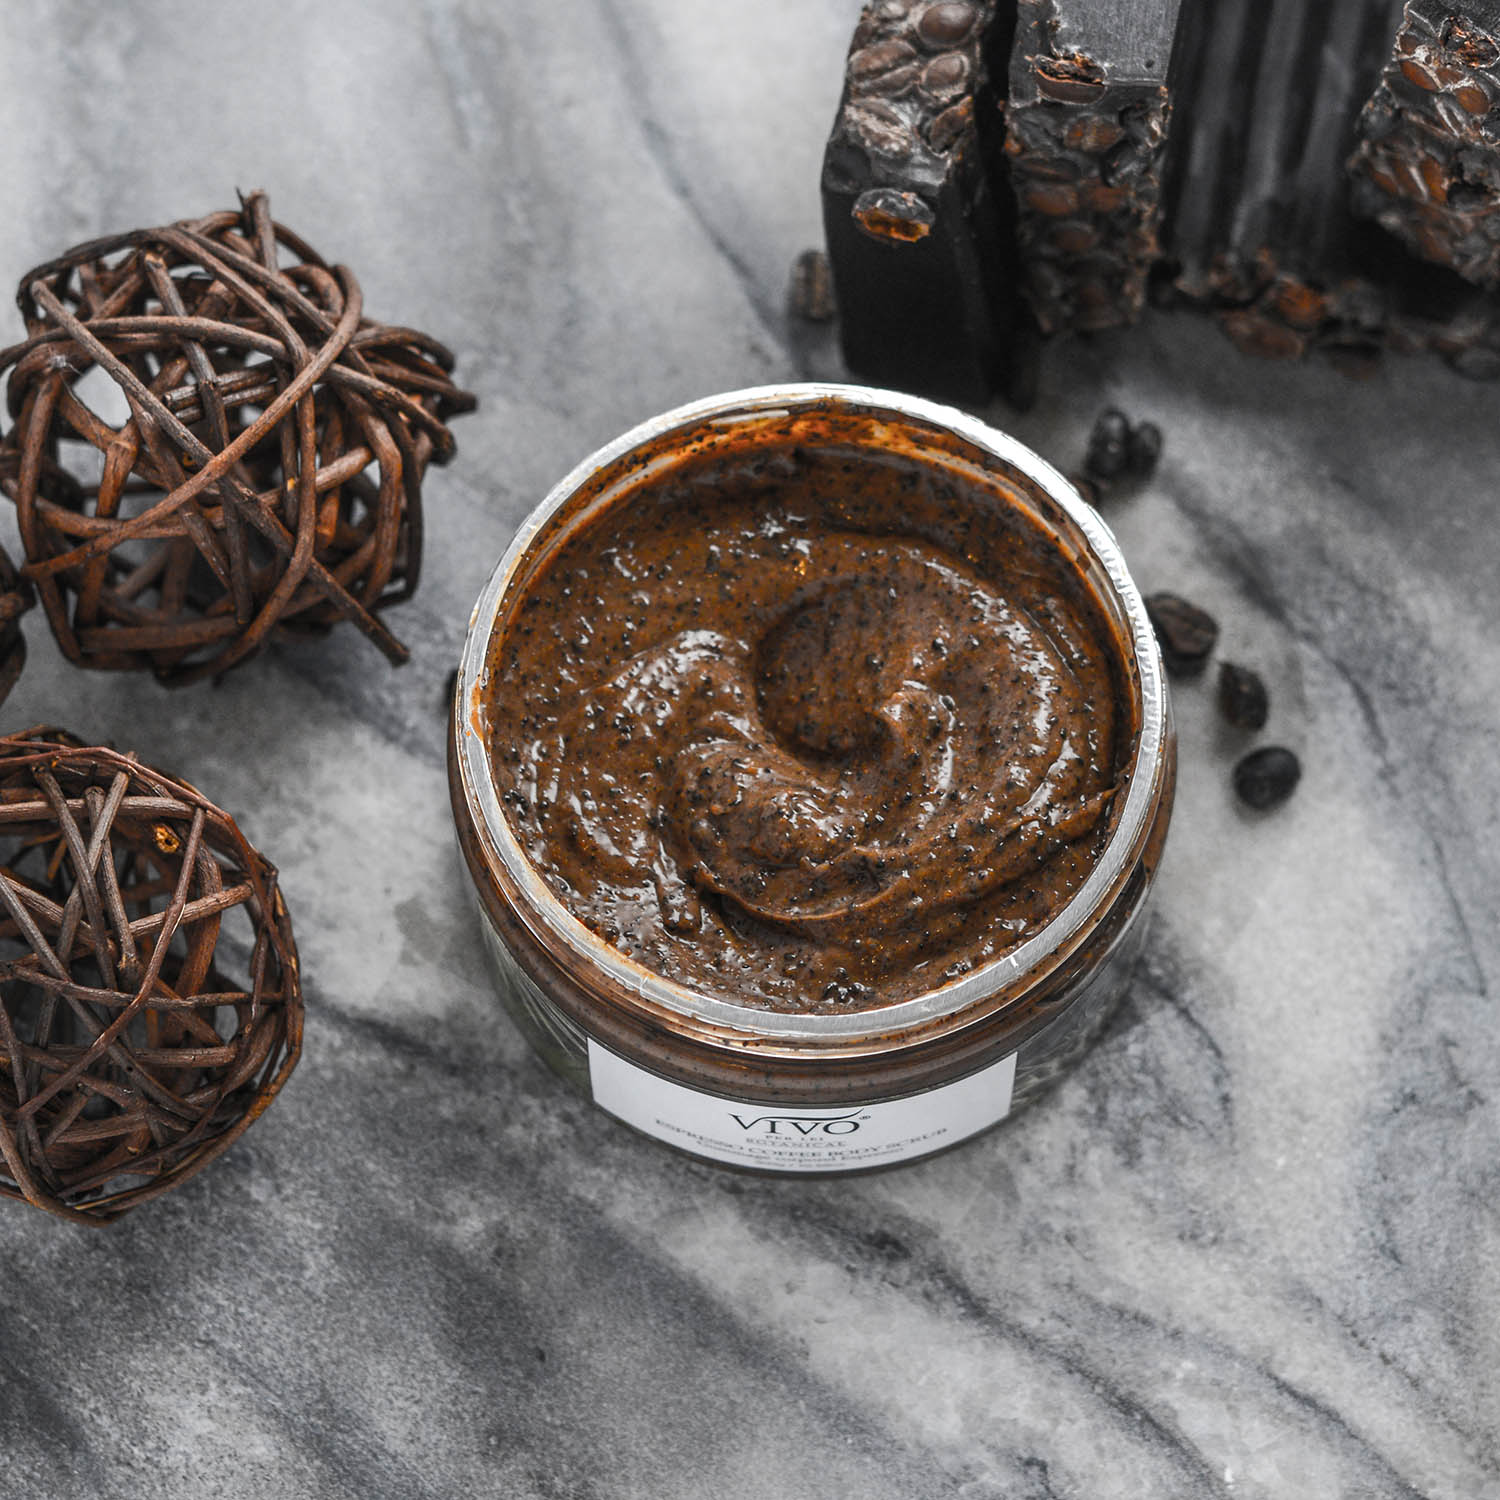 Vivo Per Lei Expresso Coffee Scrub For Cellulite